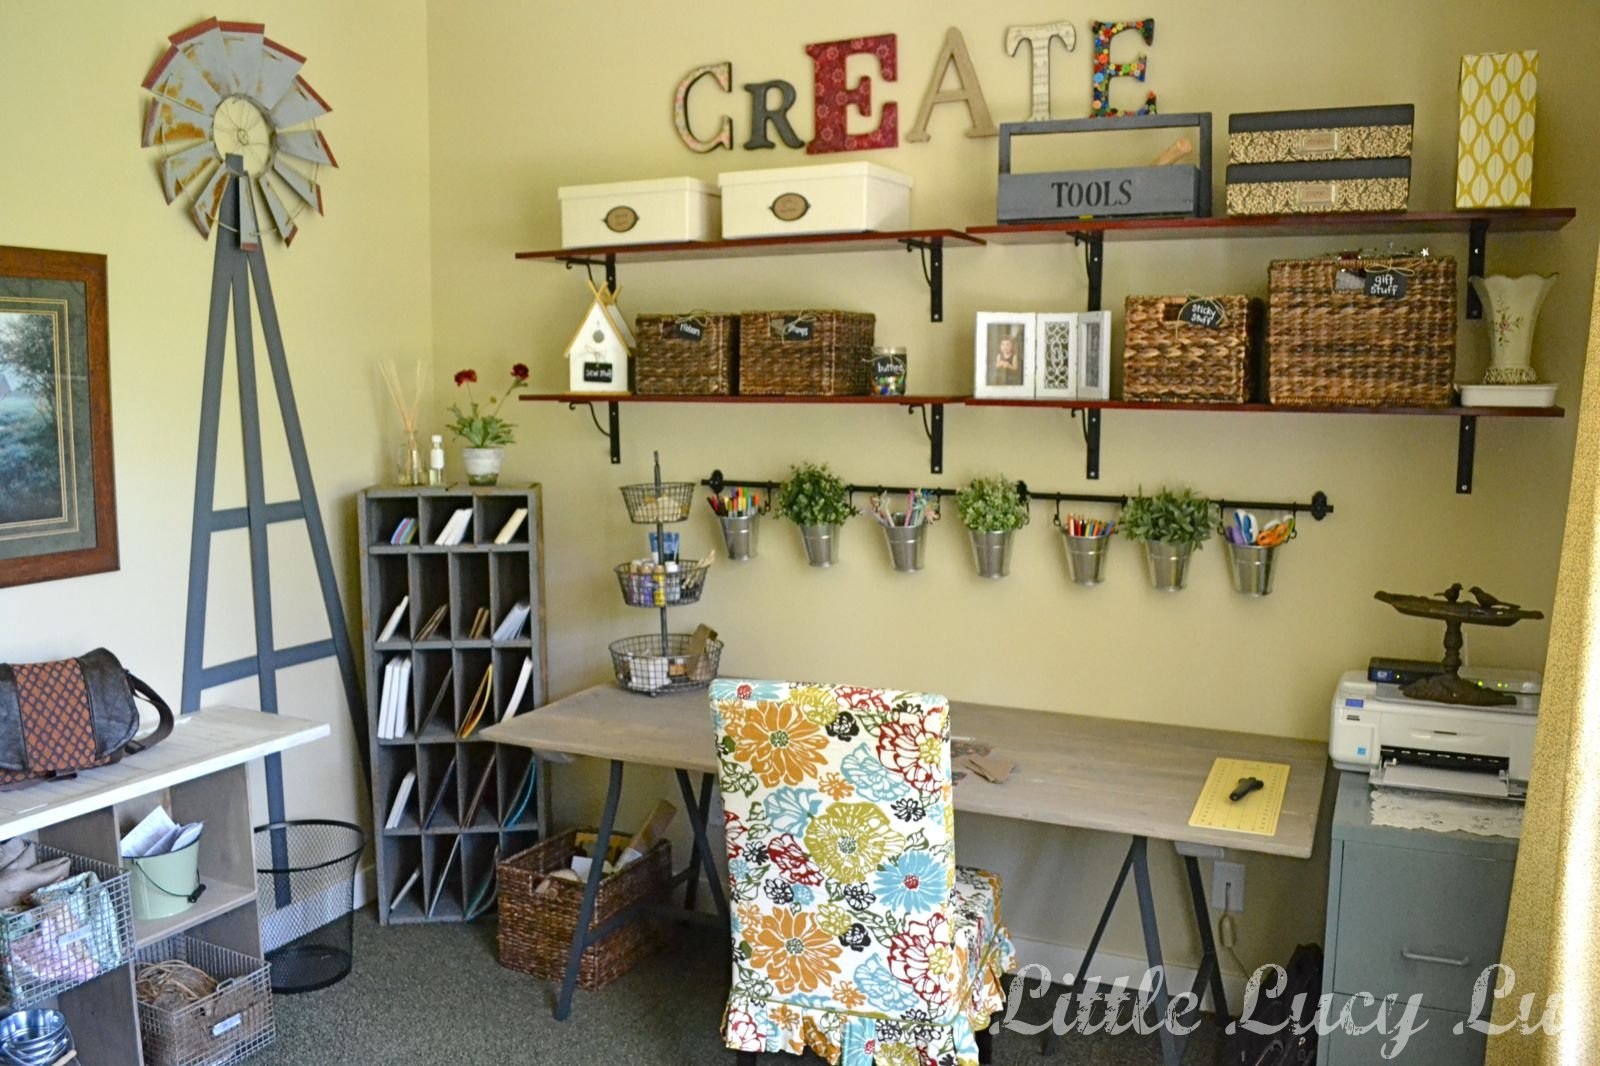 Dorable Office Wall Organization Ideas Illustration - The Wall Art ...